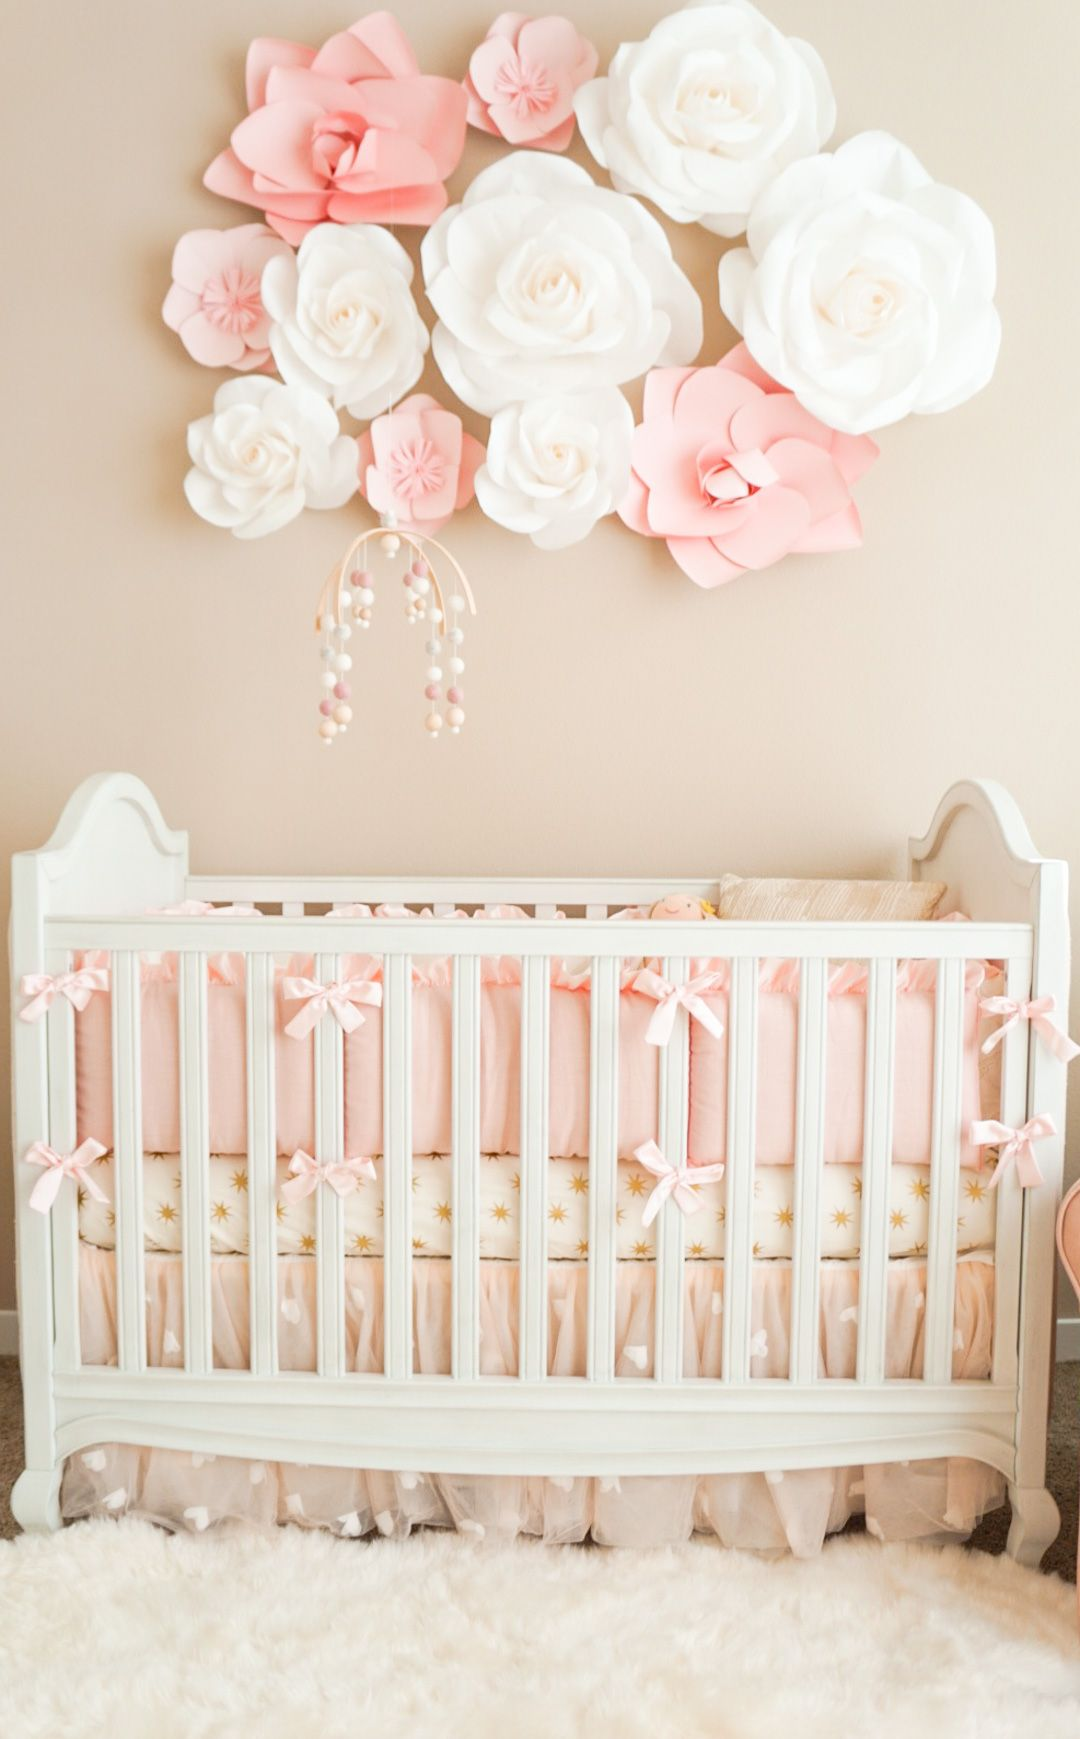 die besten 25 baby nursery ideas for girl ideen auf pinterest babyzimmerideen f r m dchen. Black Bedroom Furniture Sets. Home Design Ideas